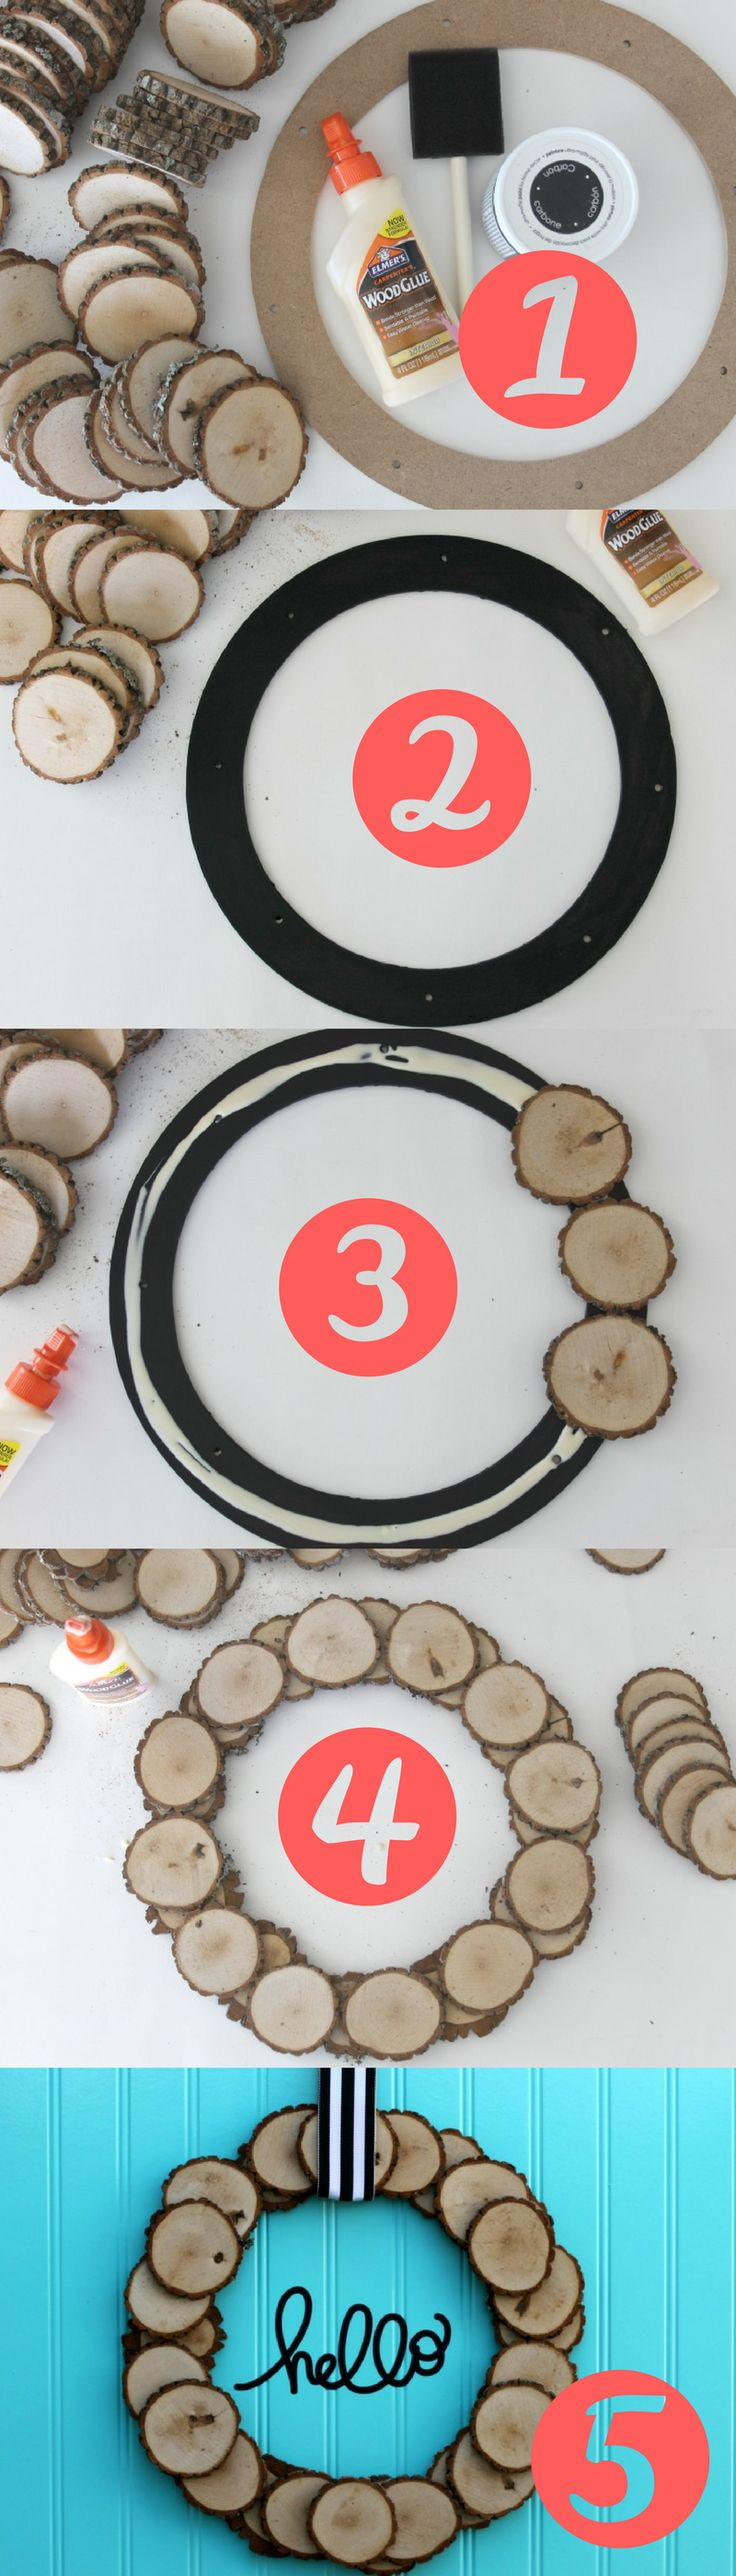 Make a wood slice wreath in five simple steps.